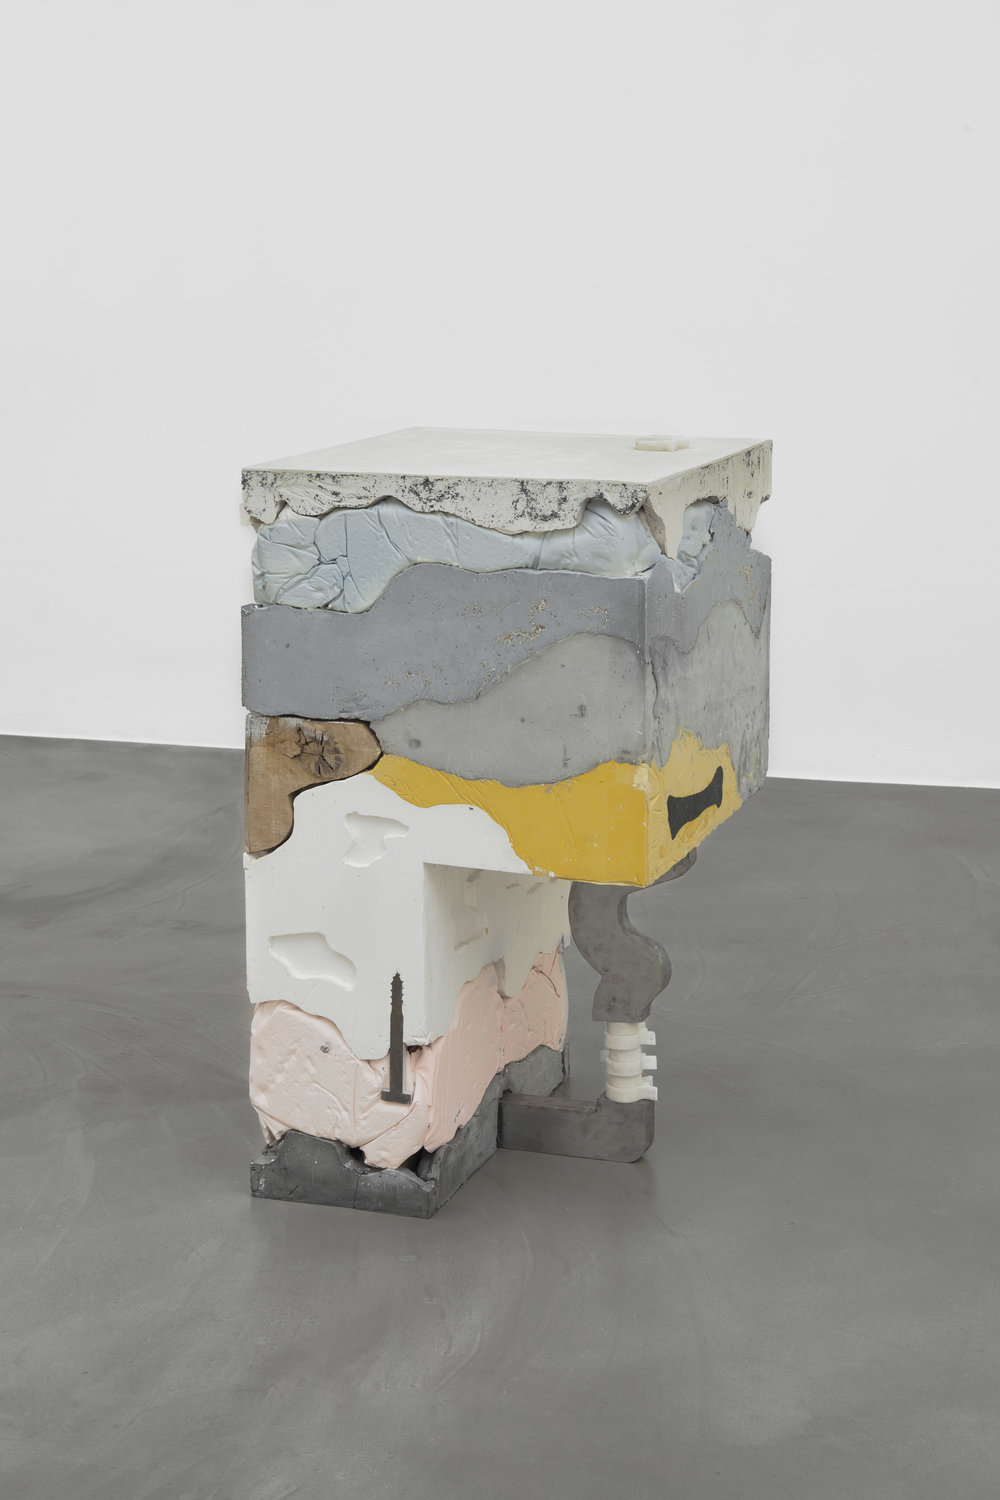 Holly Hendry  Reflux , 2017 plaster, jesmonite, oak, cement, aluminum, marble, steel, tumeric, grit, poppy seeds, ash, paint, 105 x 61 x 55 cm